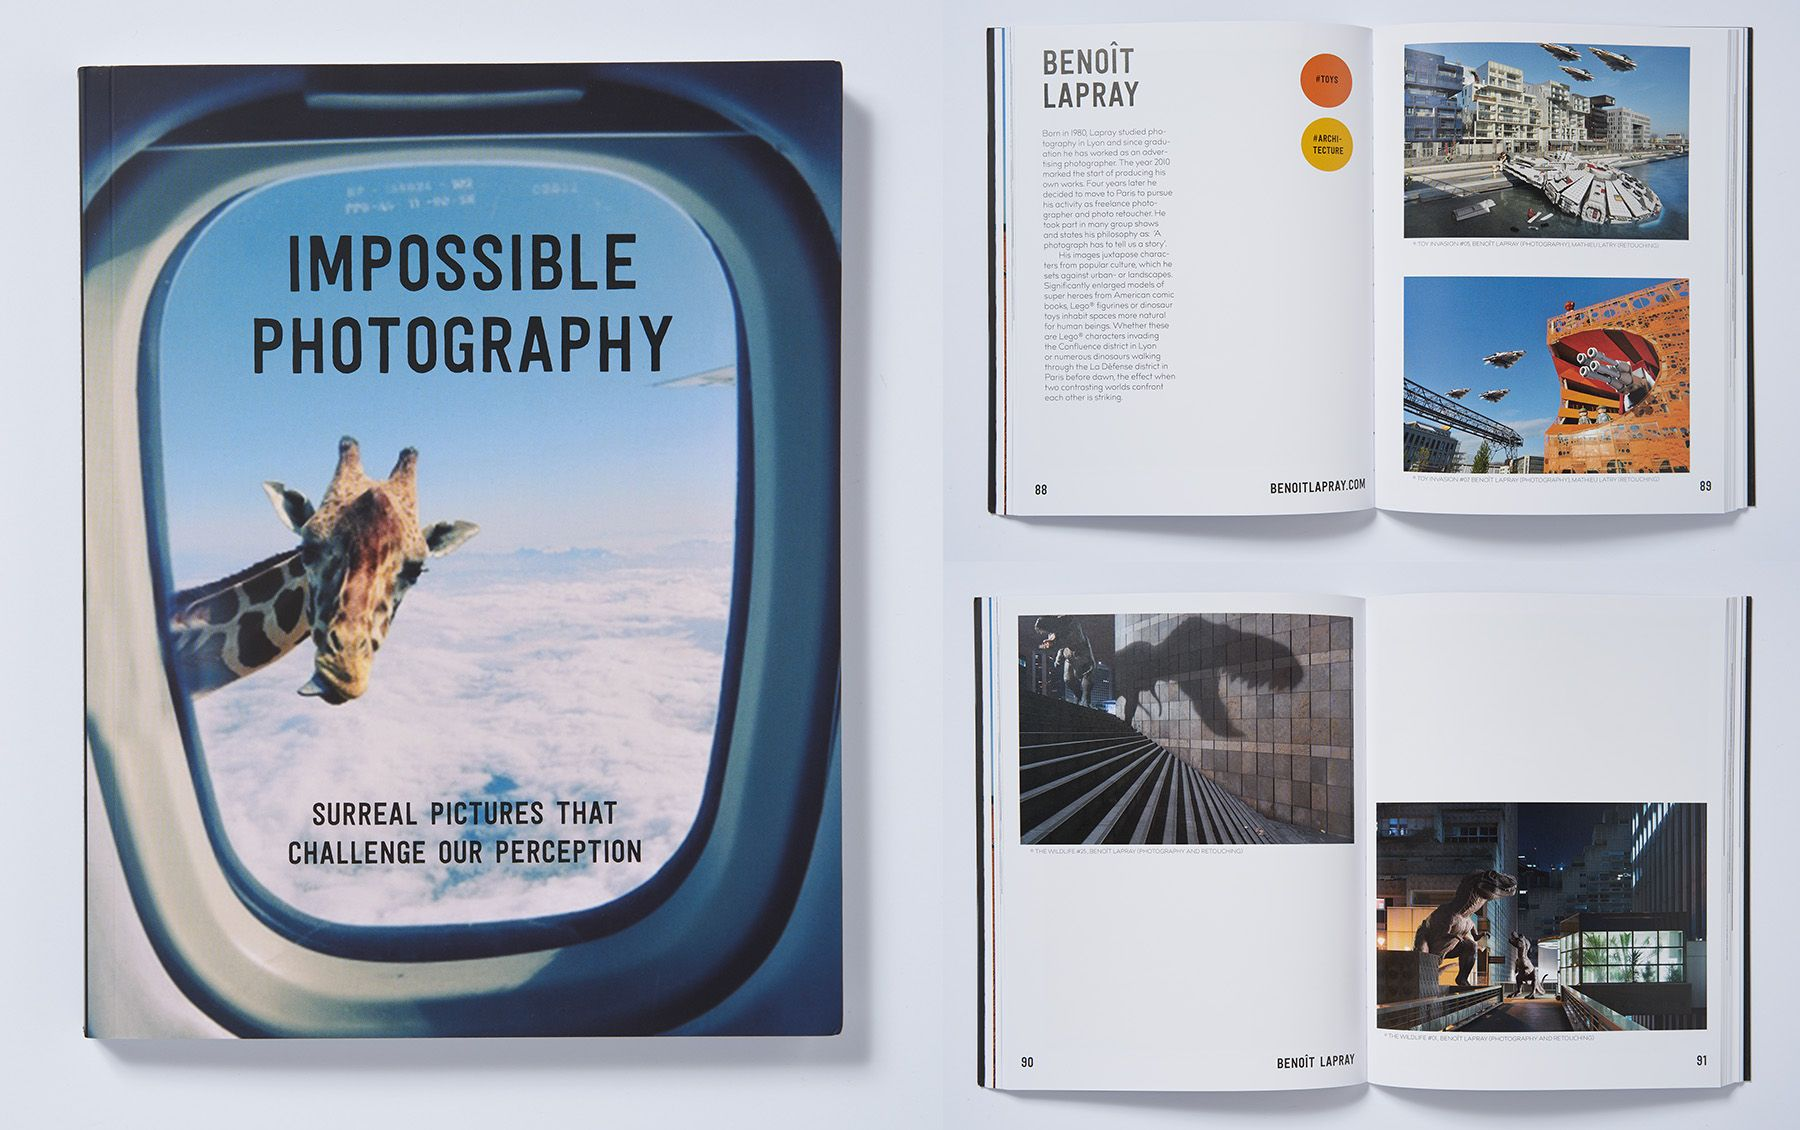 """2 pages in the book """"Impossible Photography"""" by Fancy Books (October 2017)"""